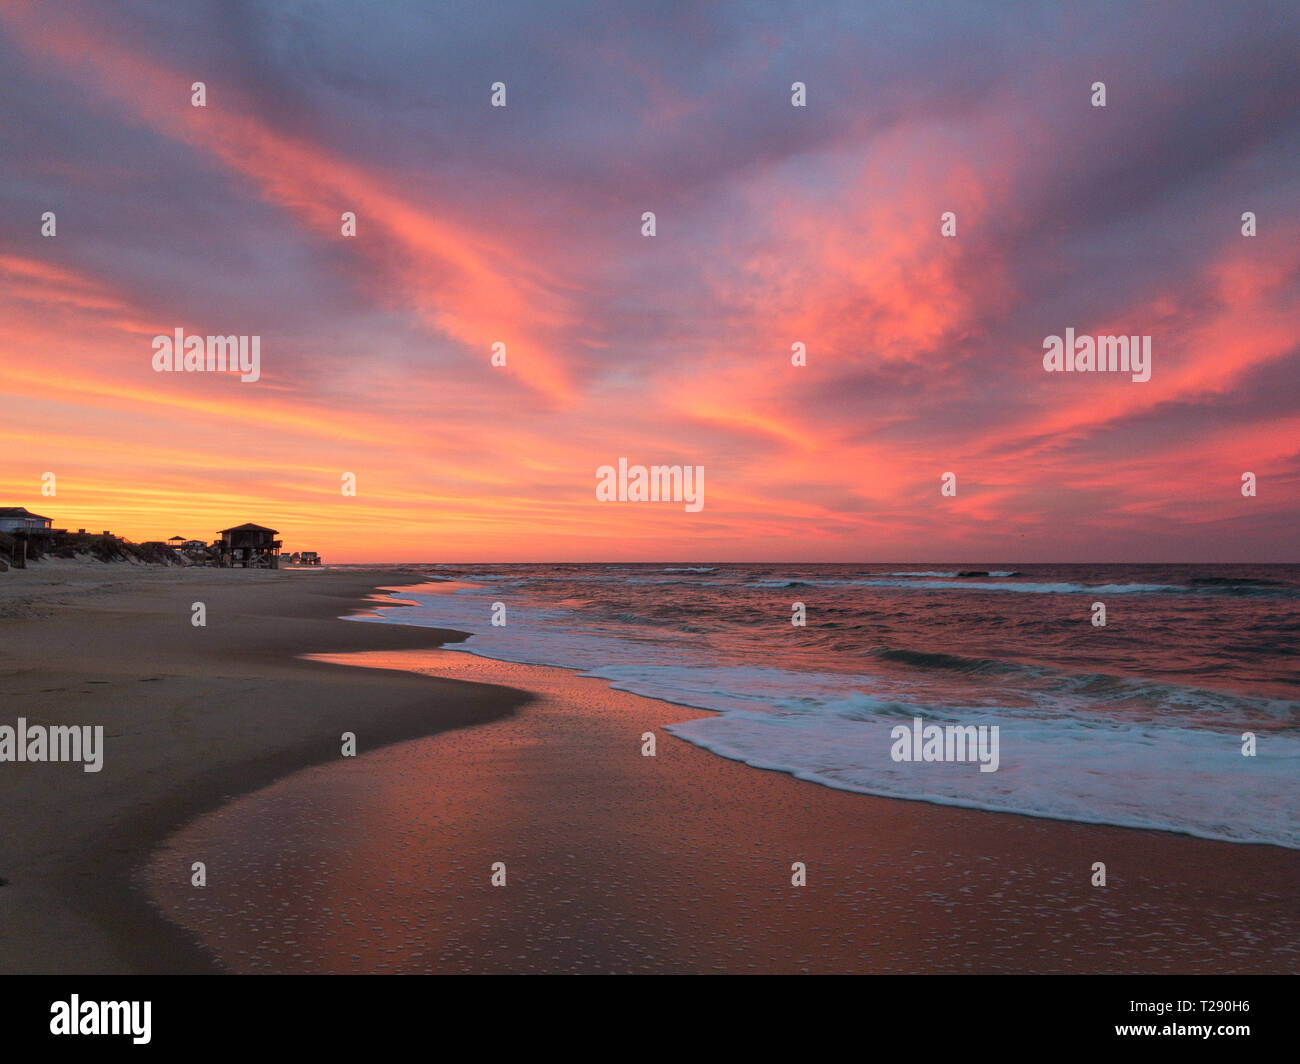 Amazing Orange Pink Red And Purple Sunset Along The Beach In The Outer Banks Of North Carolina Stock Photo Alamy